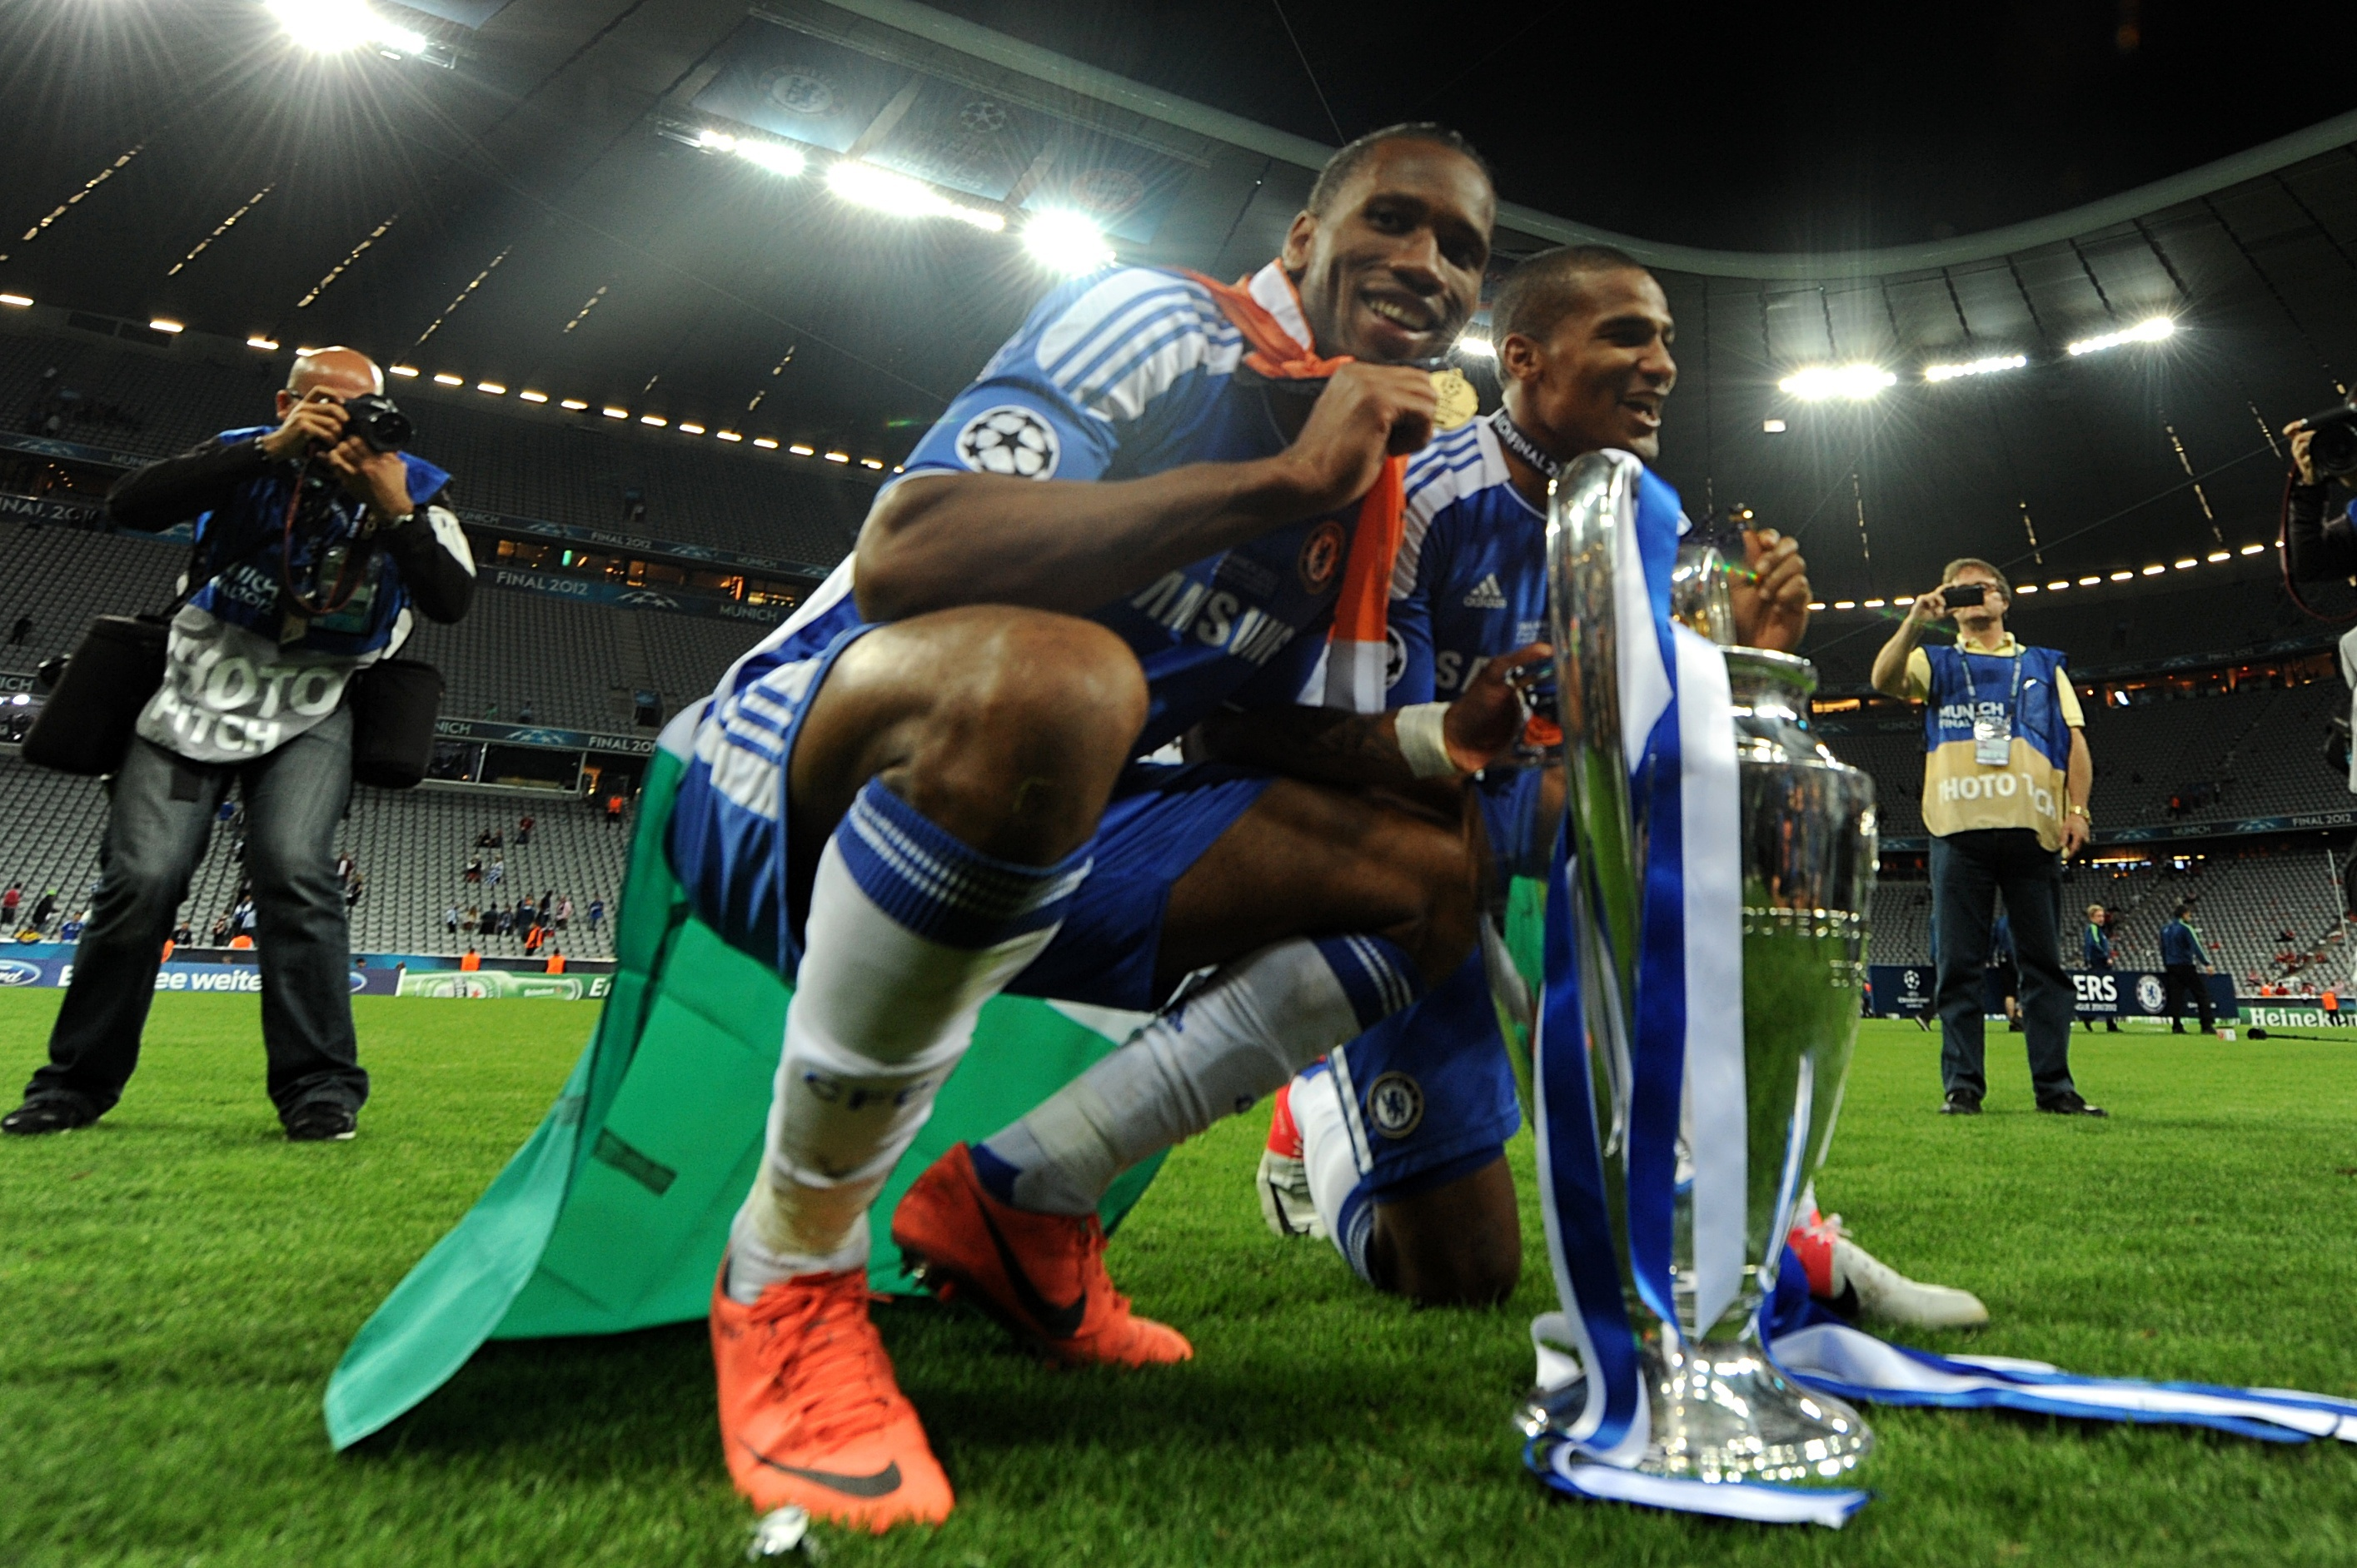 Chelsea legend Didier Drogba hangs up his boots